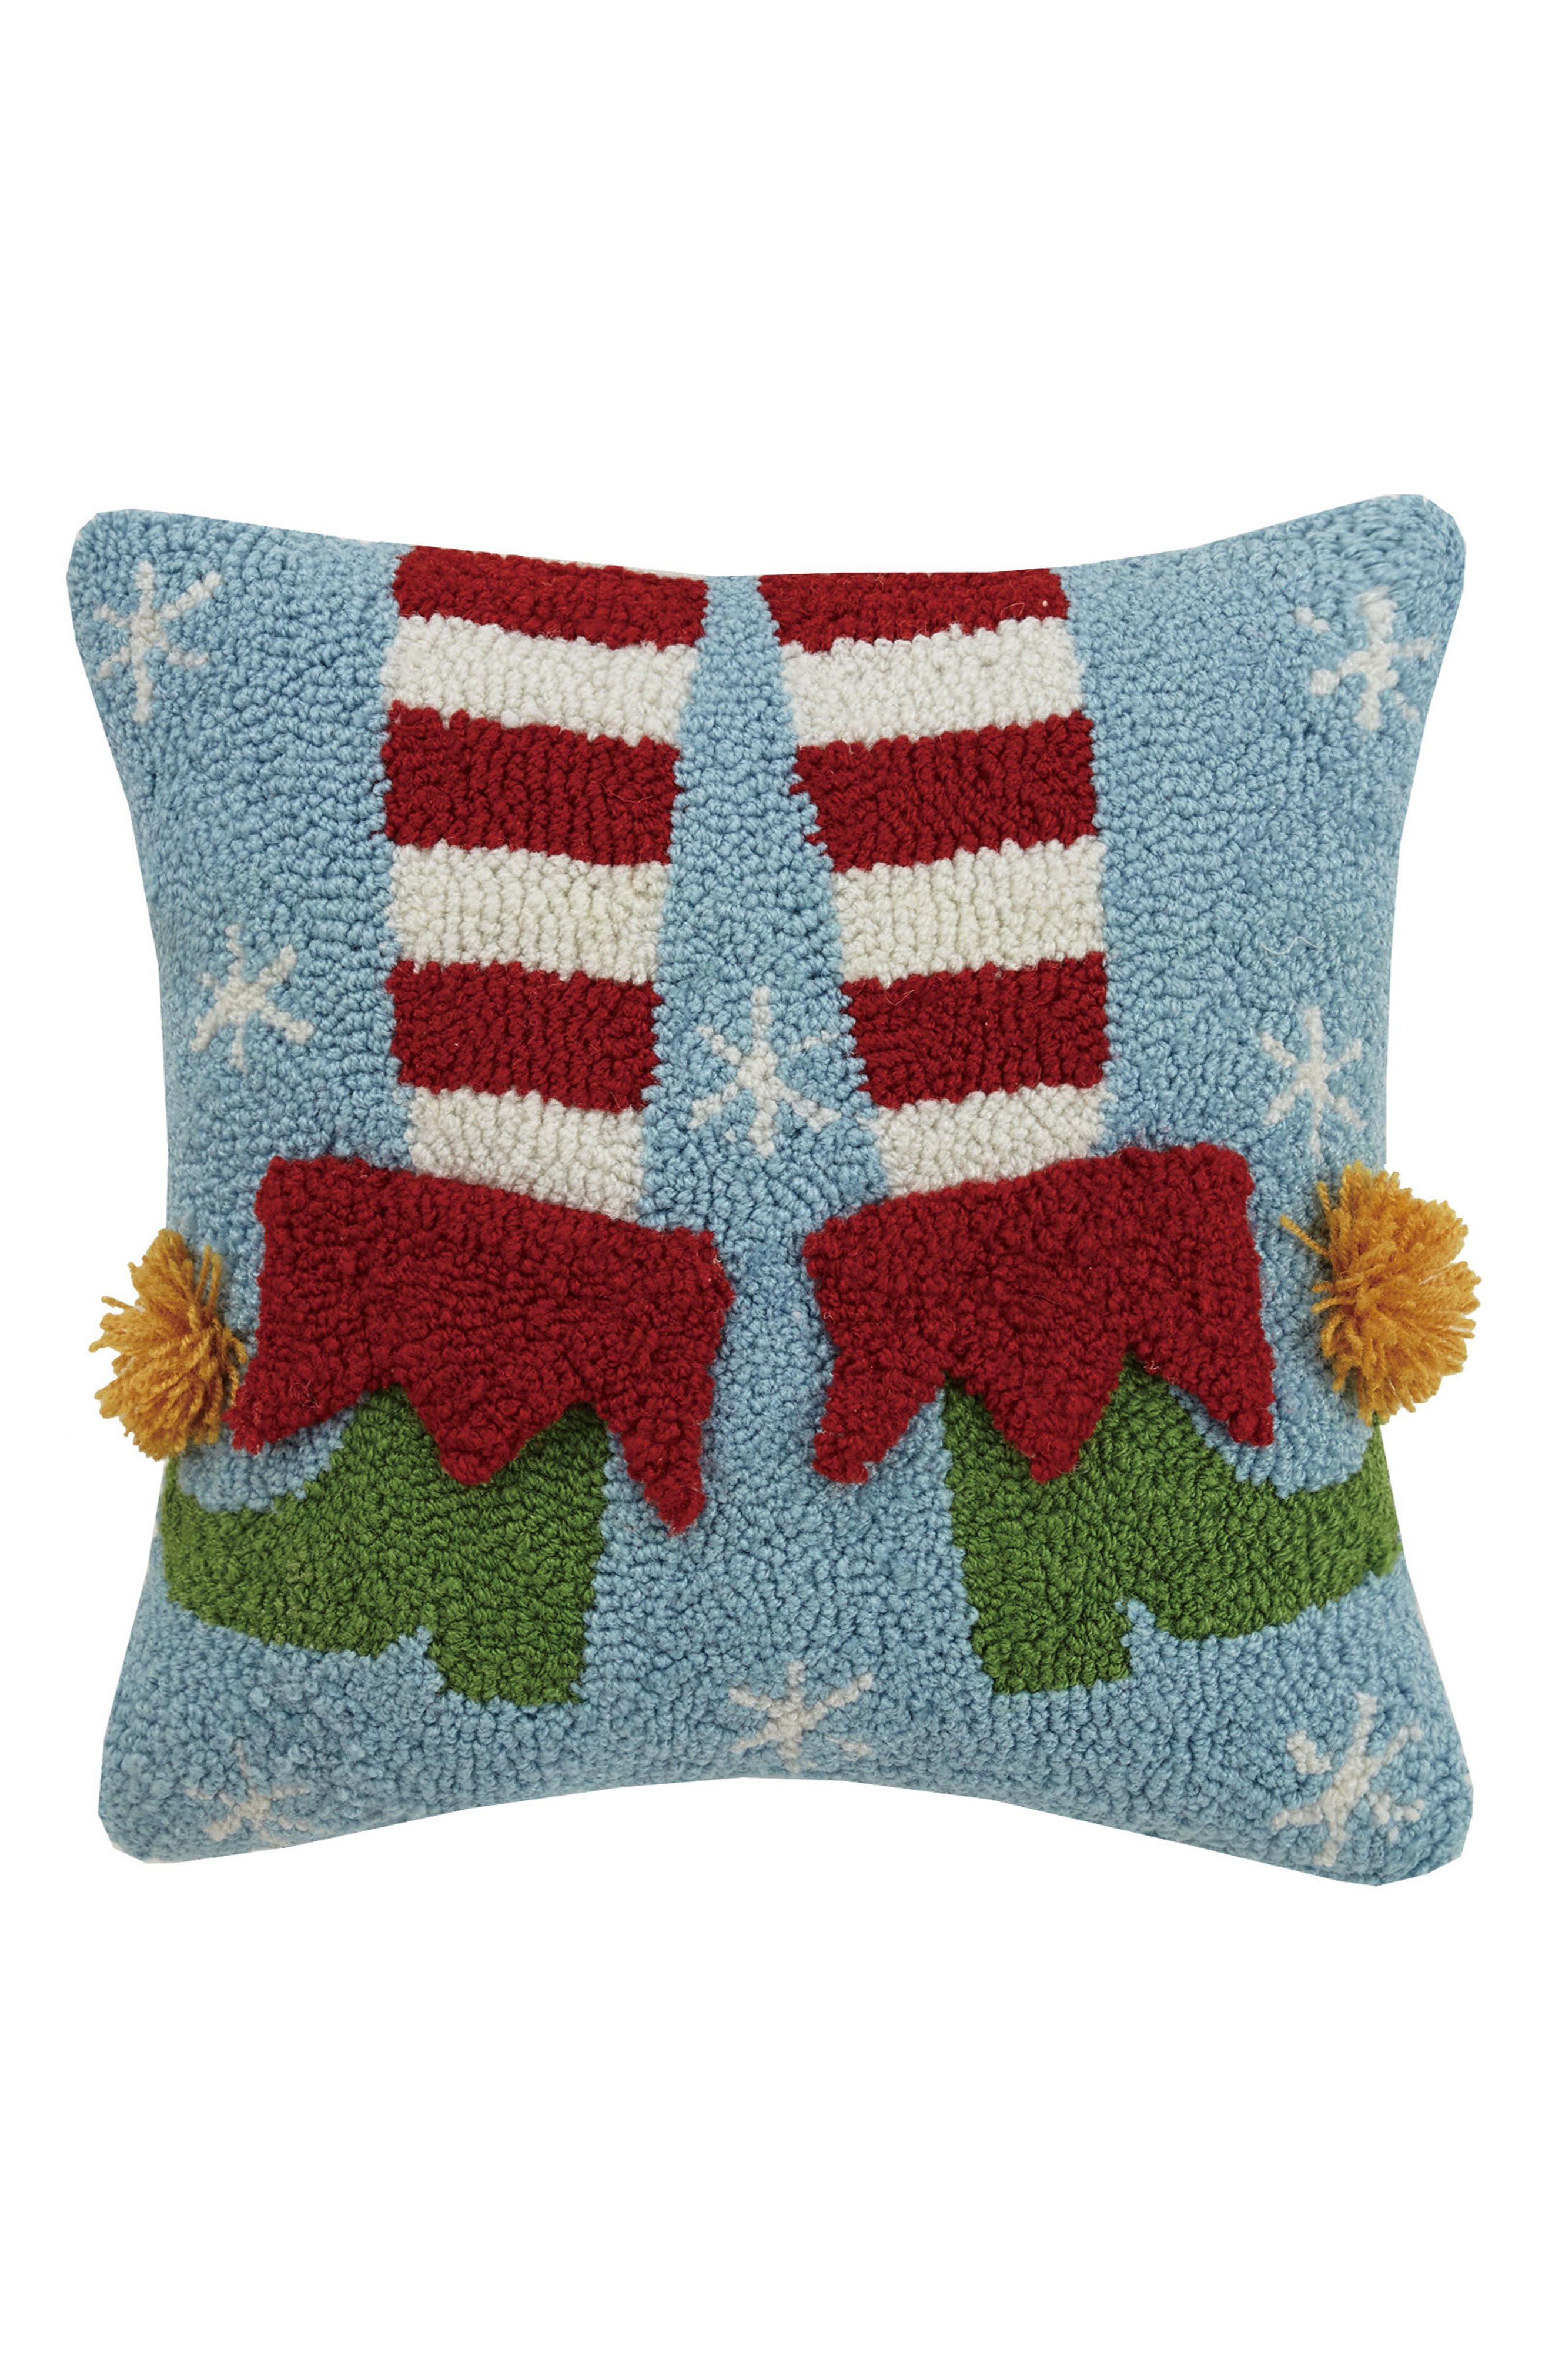 Elf Legs Hooked Accent Pillow,                         Main,                         color, Blue